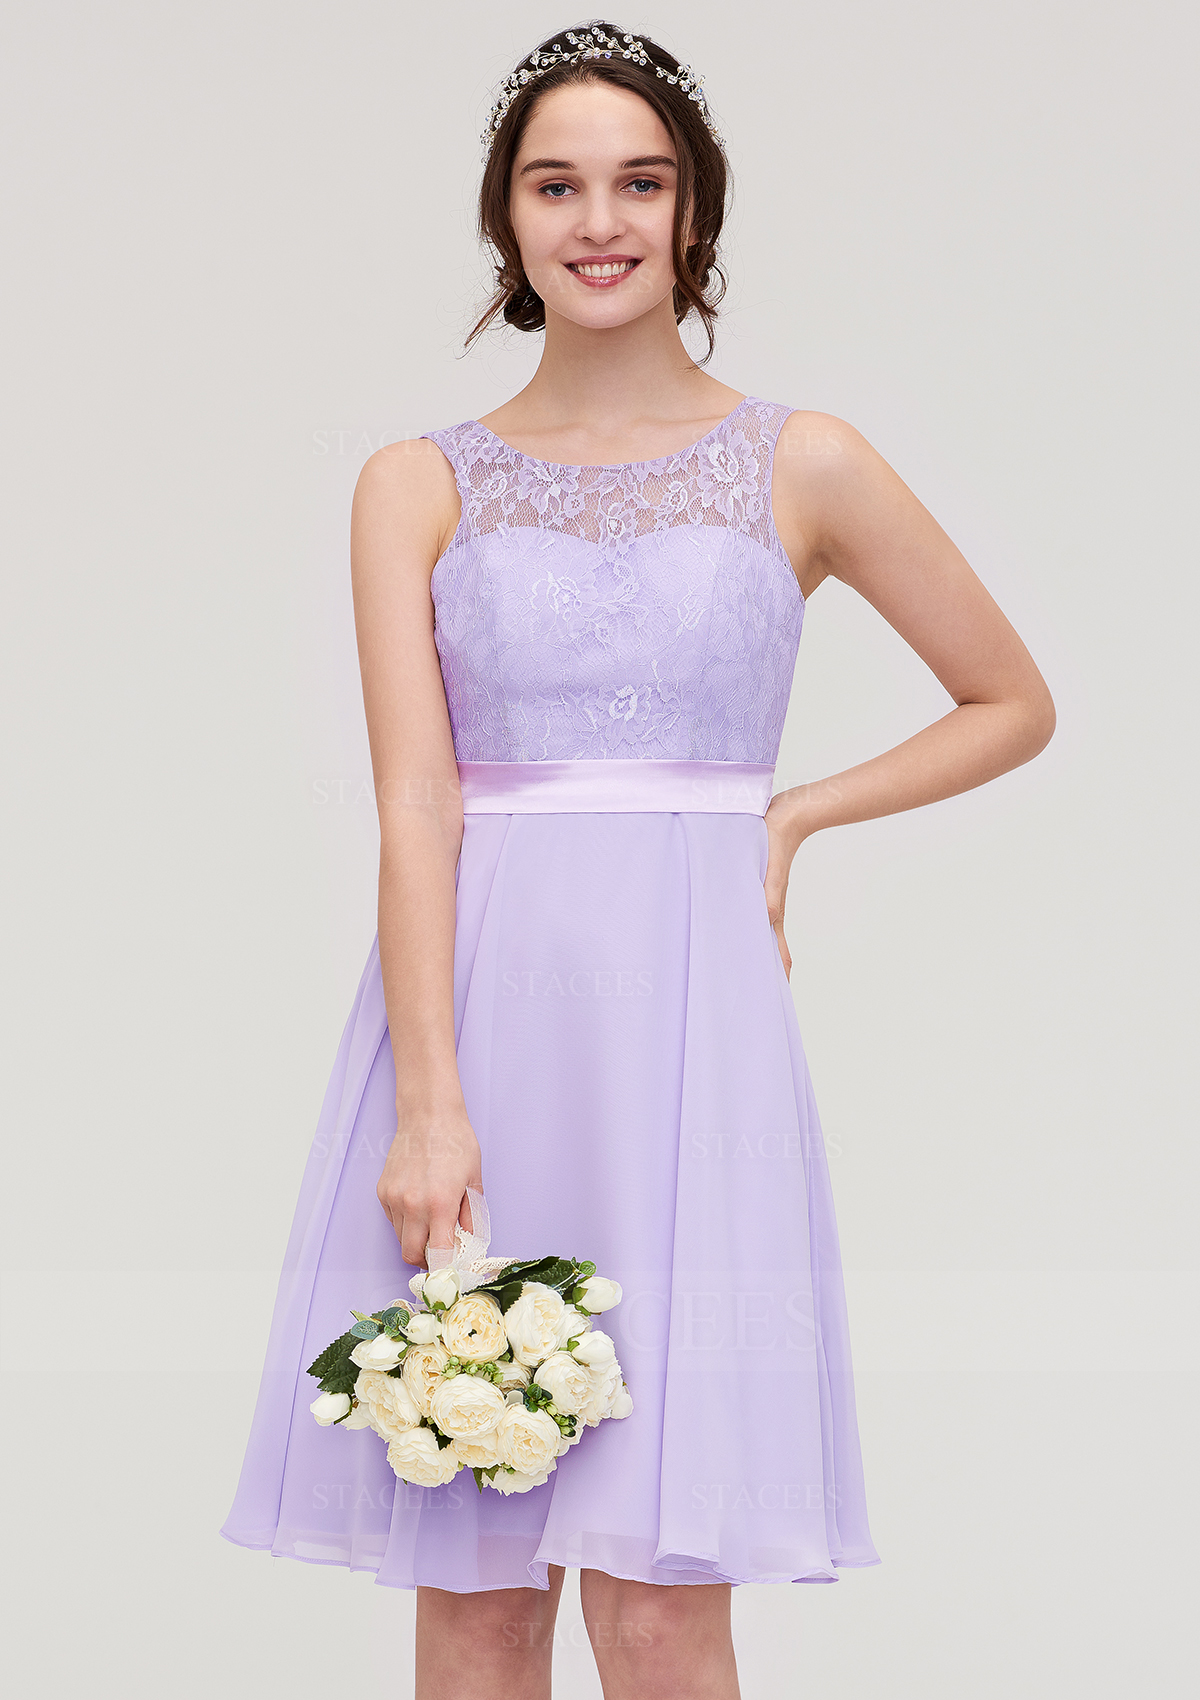 select for genuine classic style big discount of 2019 A-line/Princess Bateau Sleeveless Knee-Length Chiffon Bridesmaid Dress With  Sashes Lace